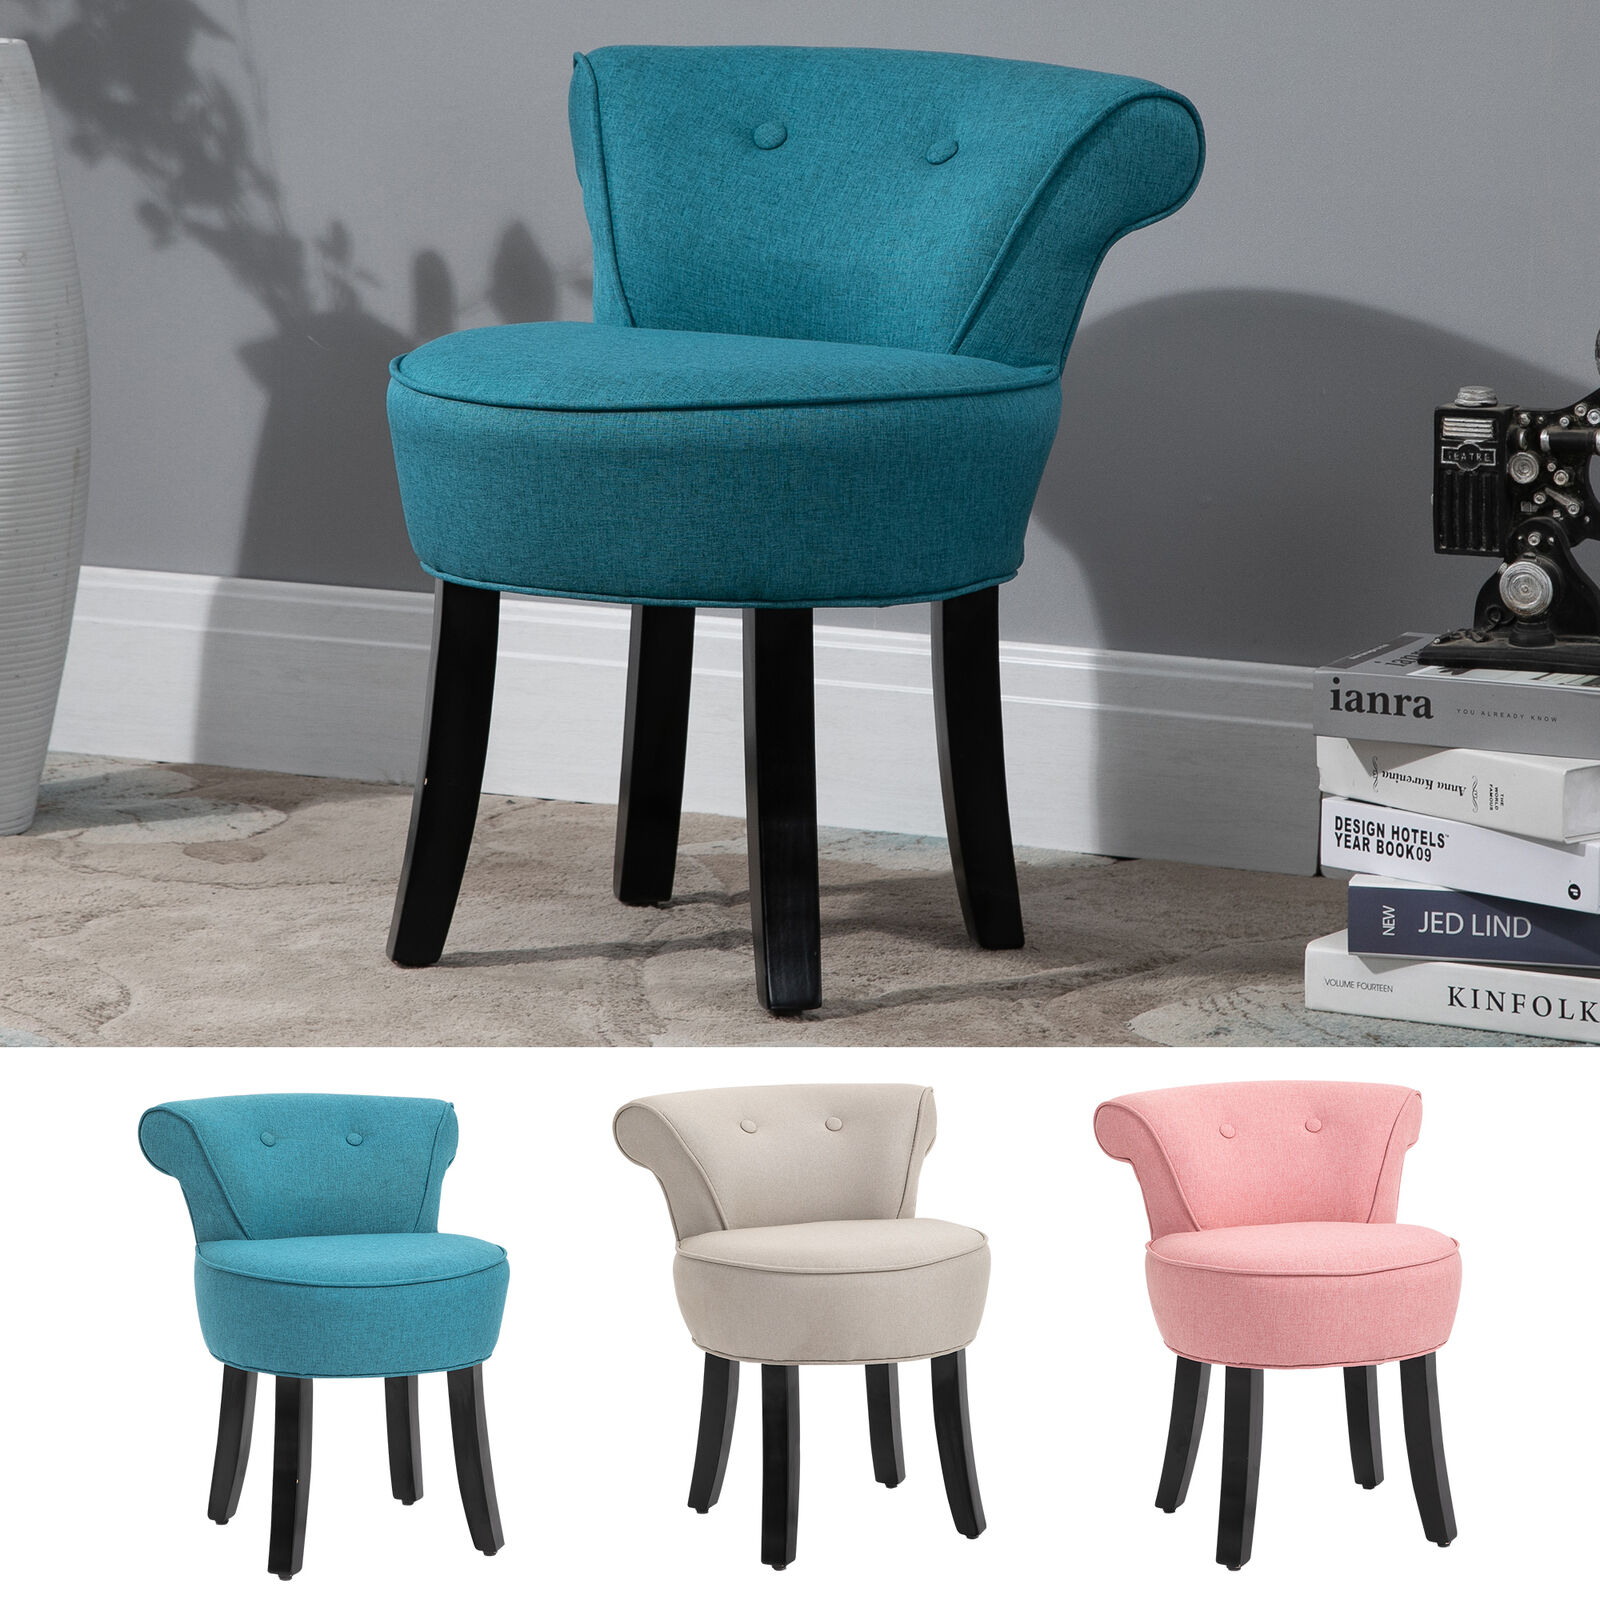 Small Accent Vanity Chair with Low-Back Cushion and Anti-Skid Feet